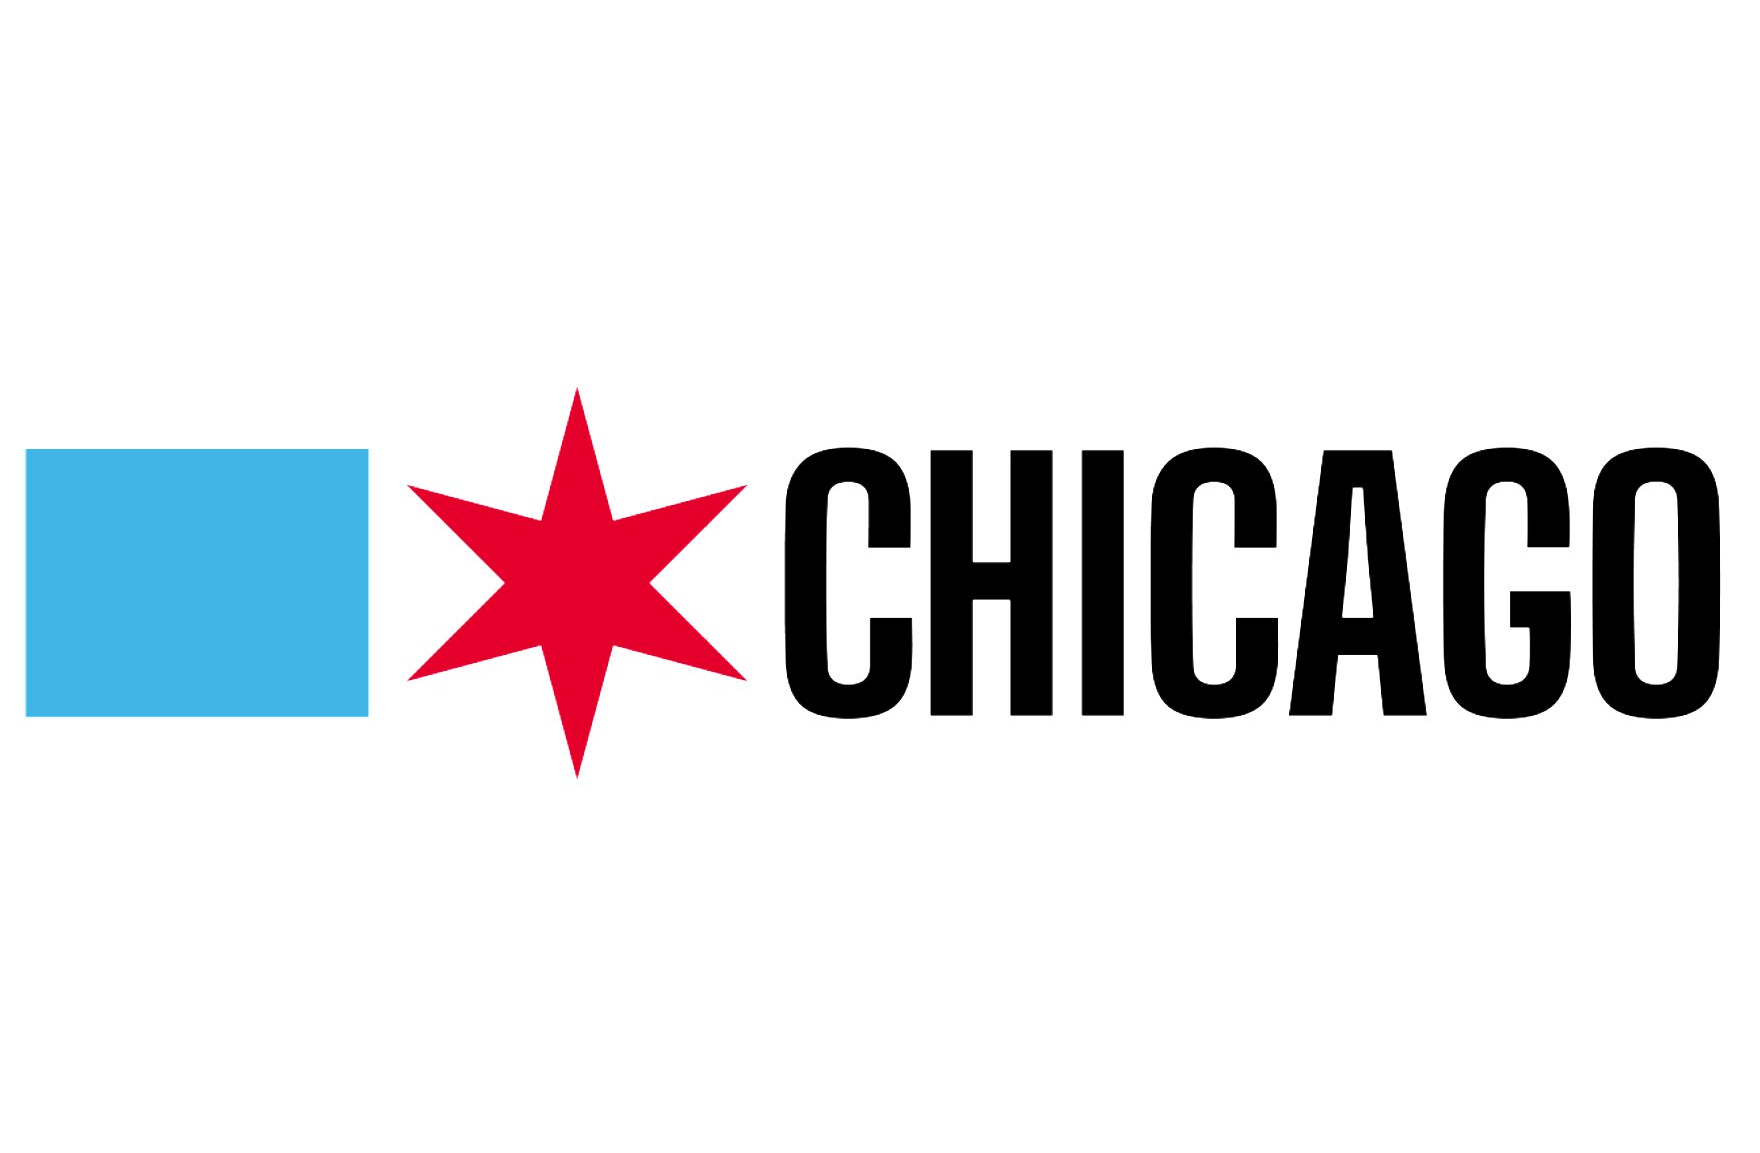 Ogilvy Marks Chicago's 183rd Anniversary with Fresh Visual Design